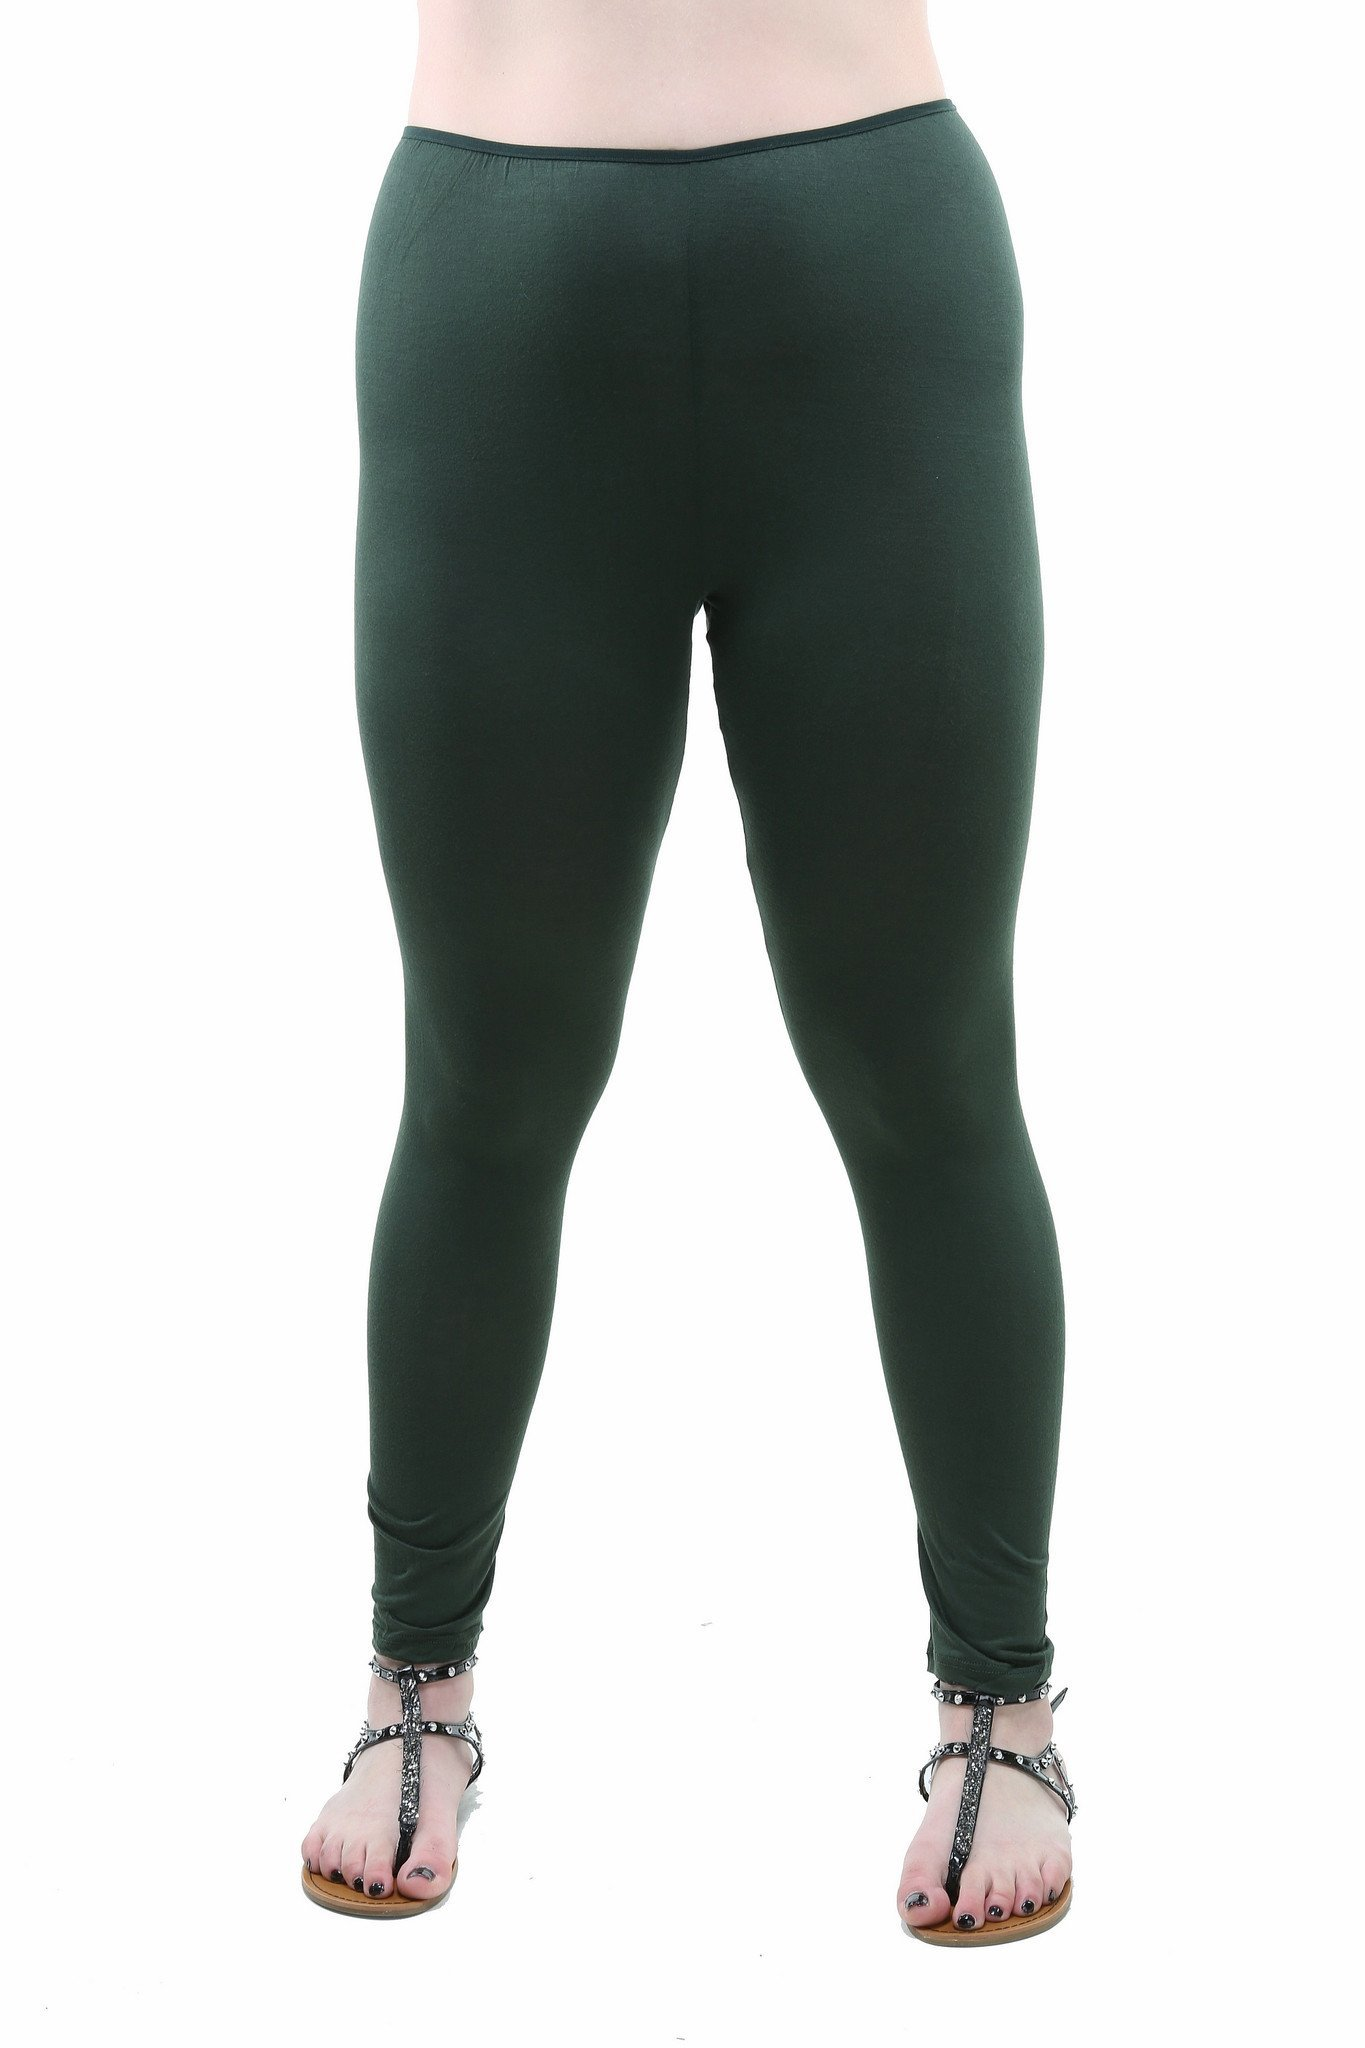 Plus Size Women's Leggings